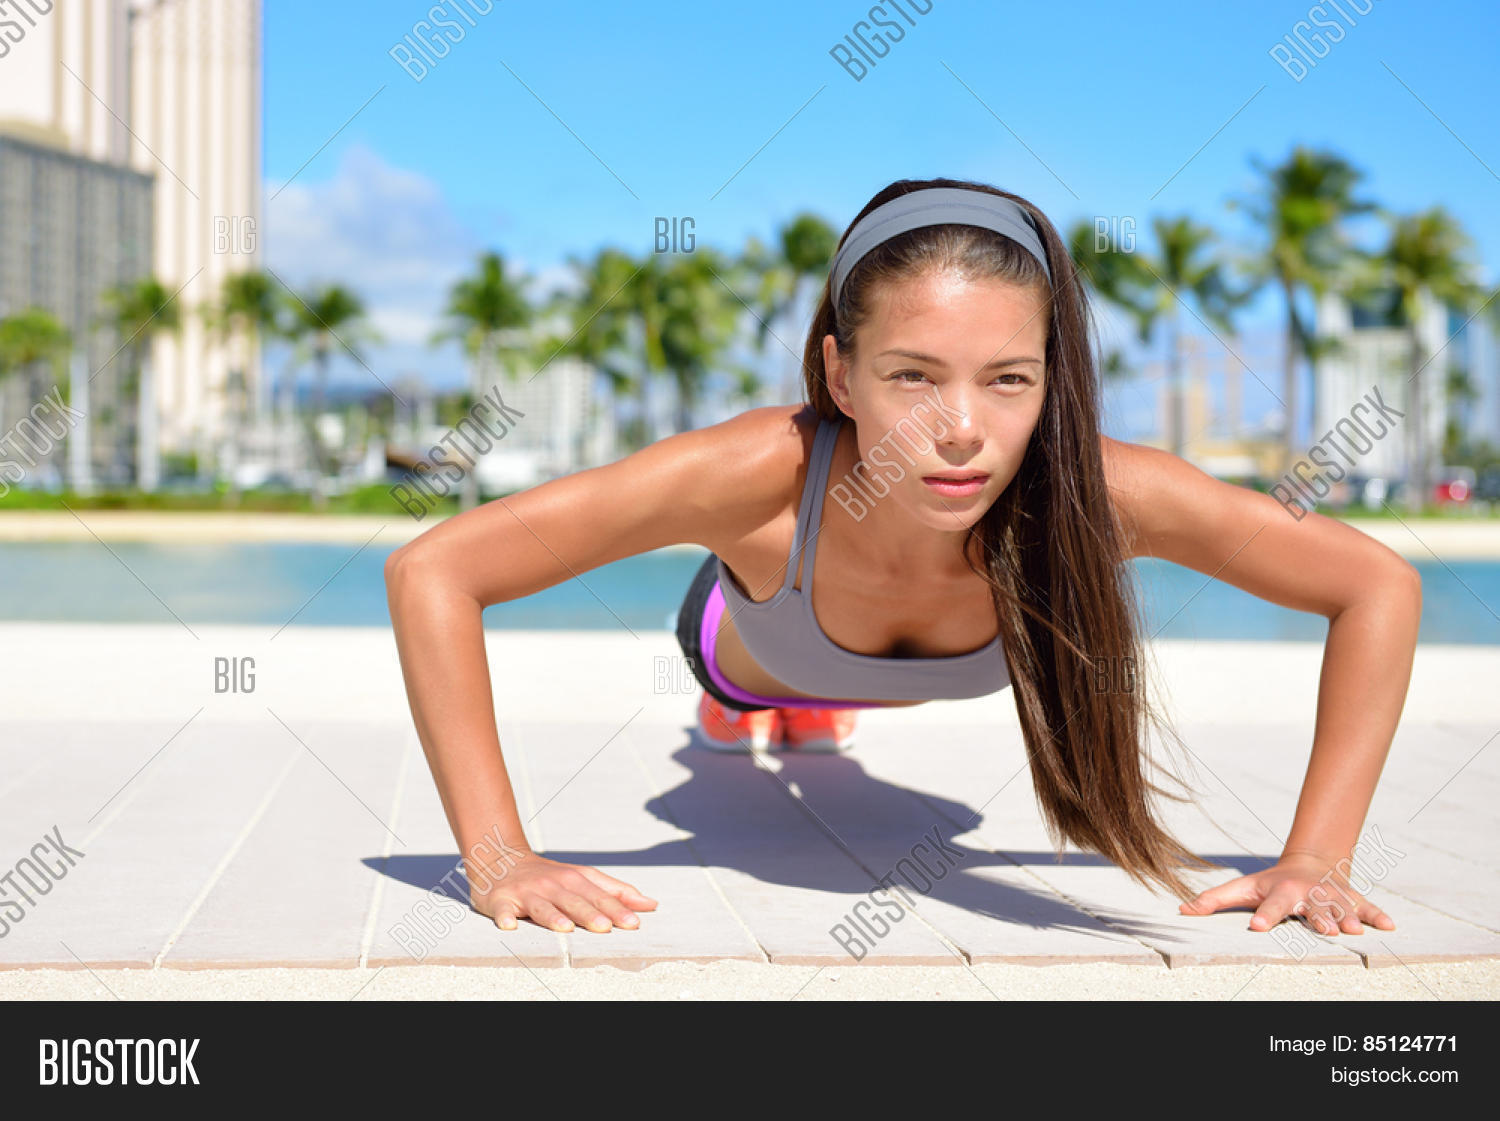 Push Ups Fitness Woman Image Photo Free Trial Bigstock First, let's clear up a popular misconception. push ups fitness woman image photo